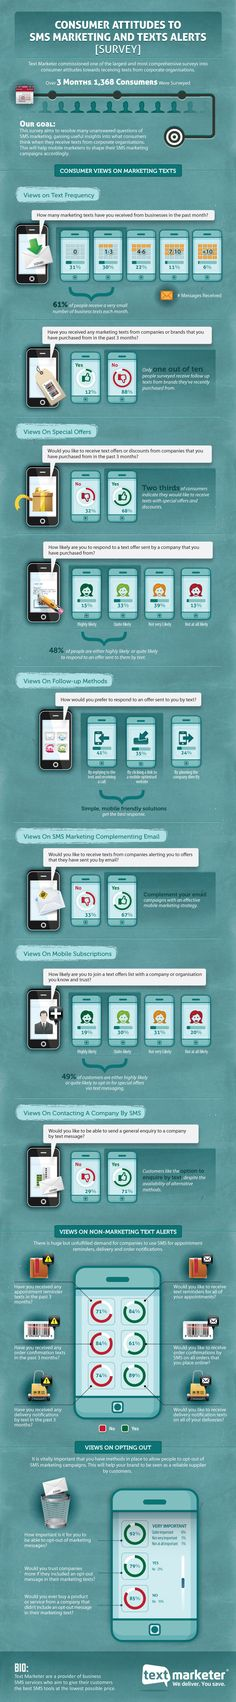 Consumer-Attitudes-to-SMS-Marketing-700px.jpg (700×5051)